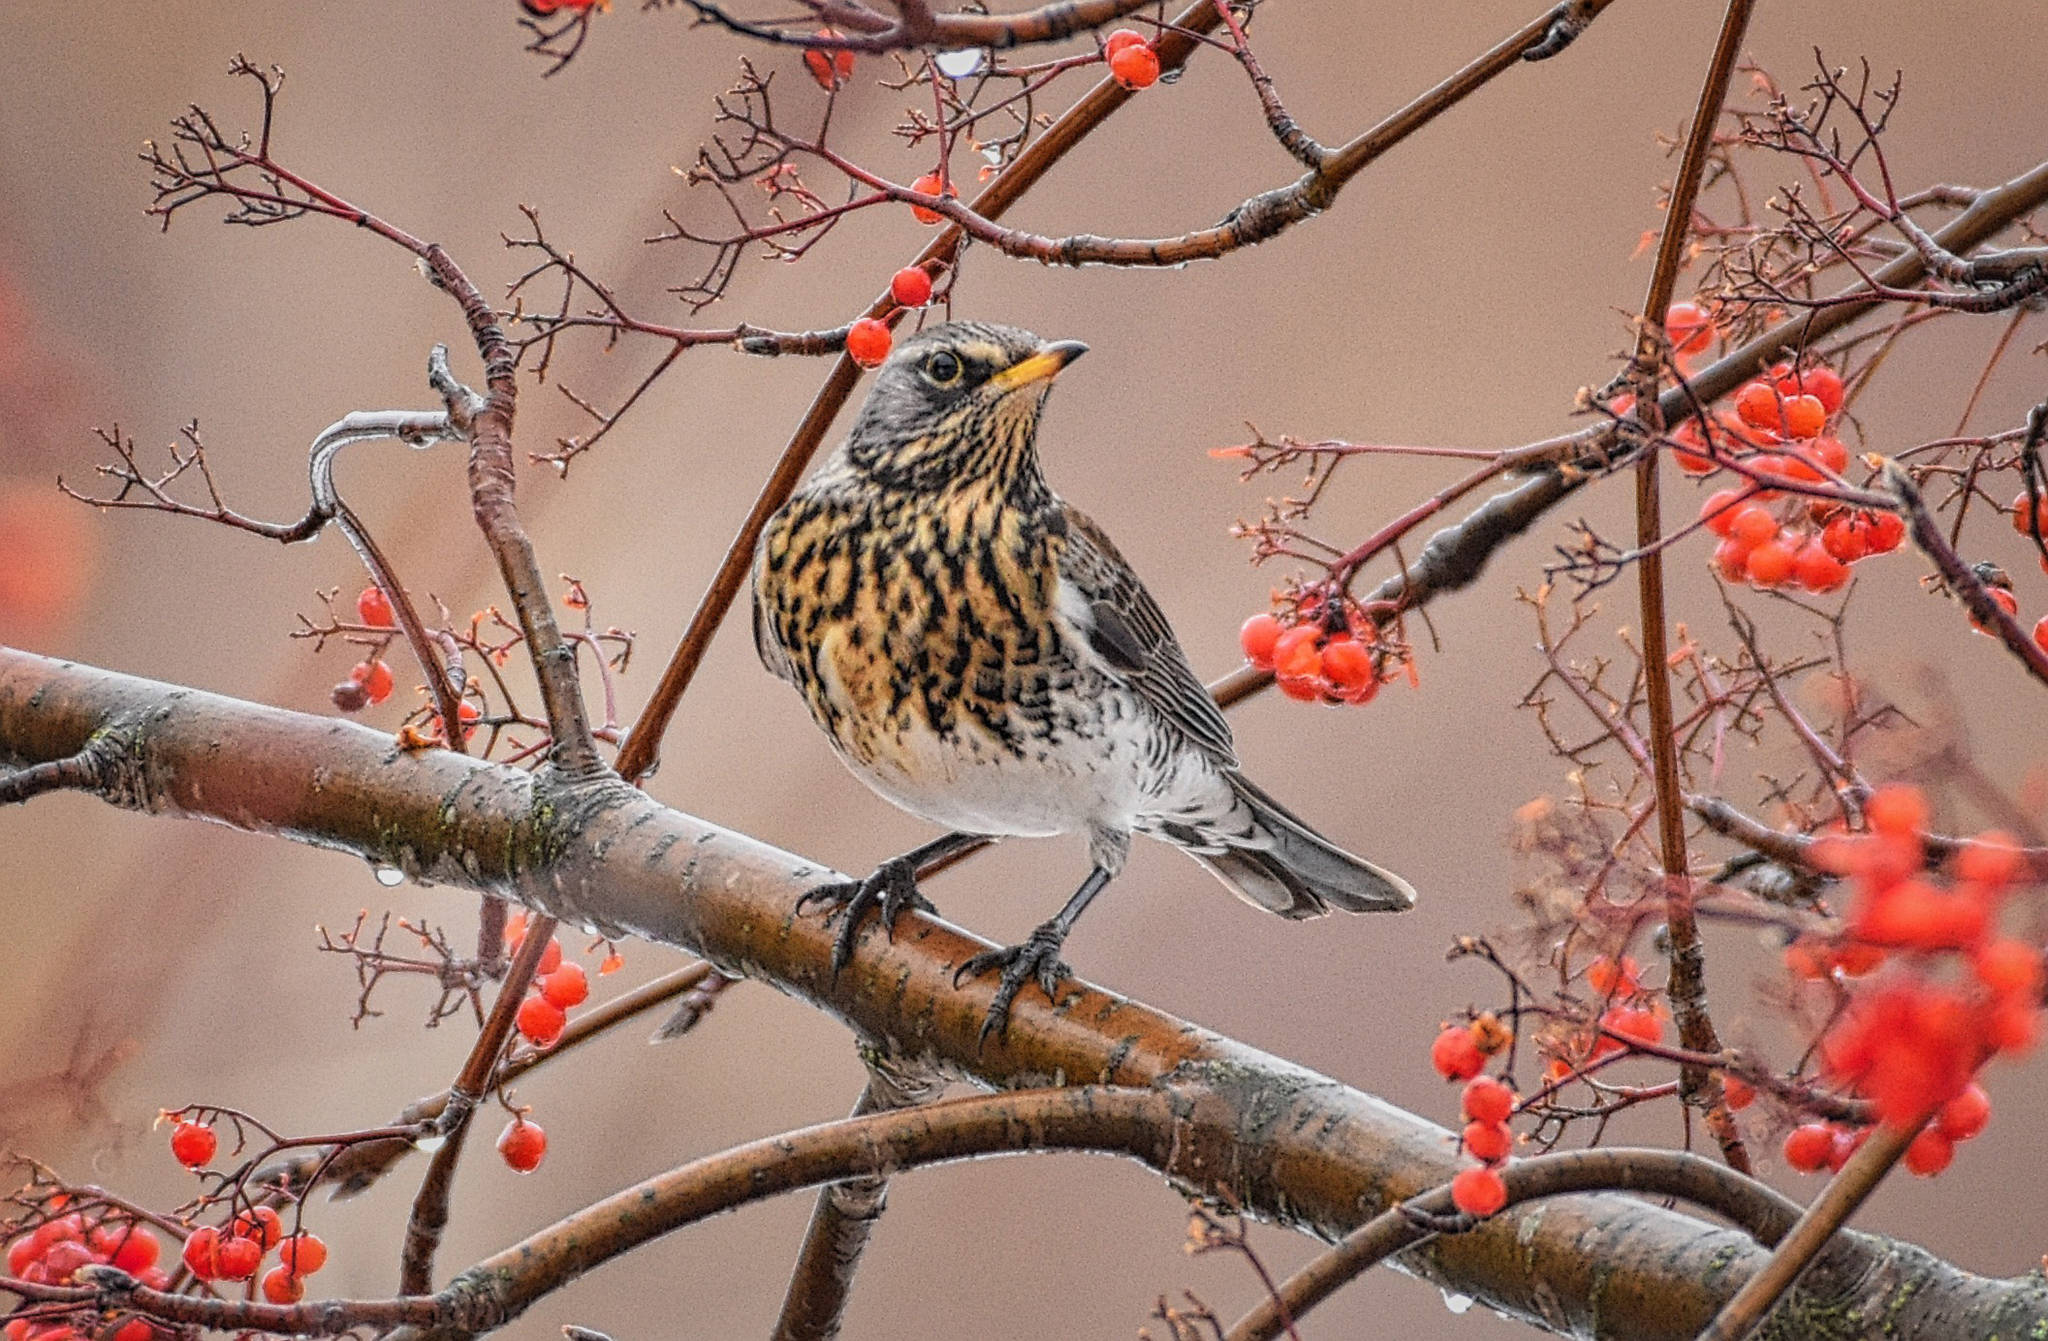 This fieldfare, a member of the thrush family, was spotted among a flock of robins during the annual Salmon Arm Bird Count on Dec. 16. This is only the second time the bird, which is native to northern Europe and Asia, has been seen in B.C. (Roger Beardmore photo)